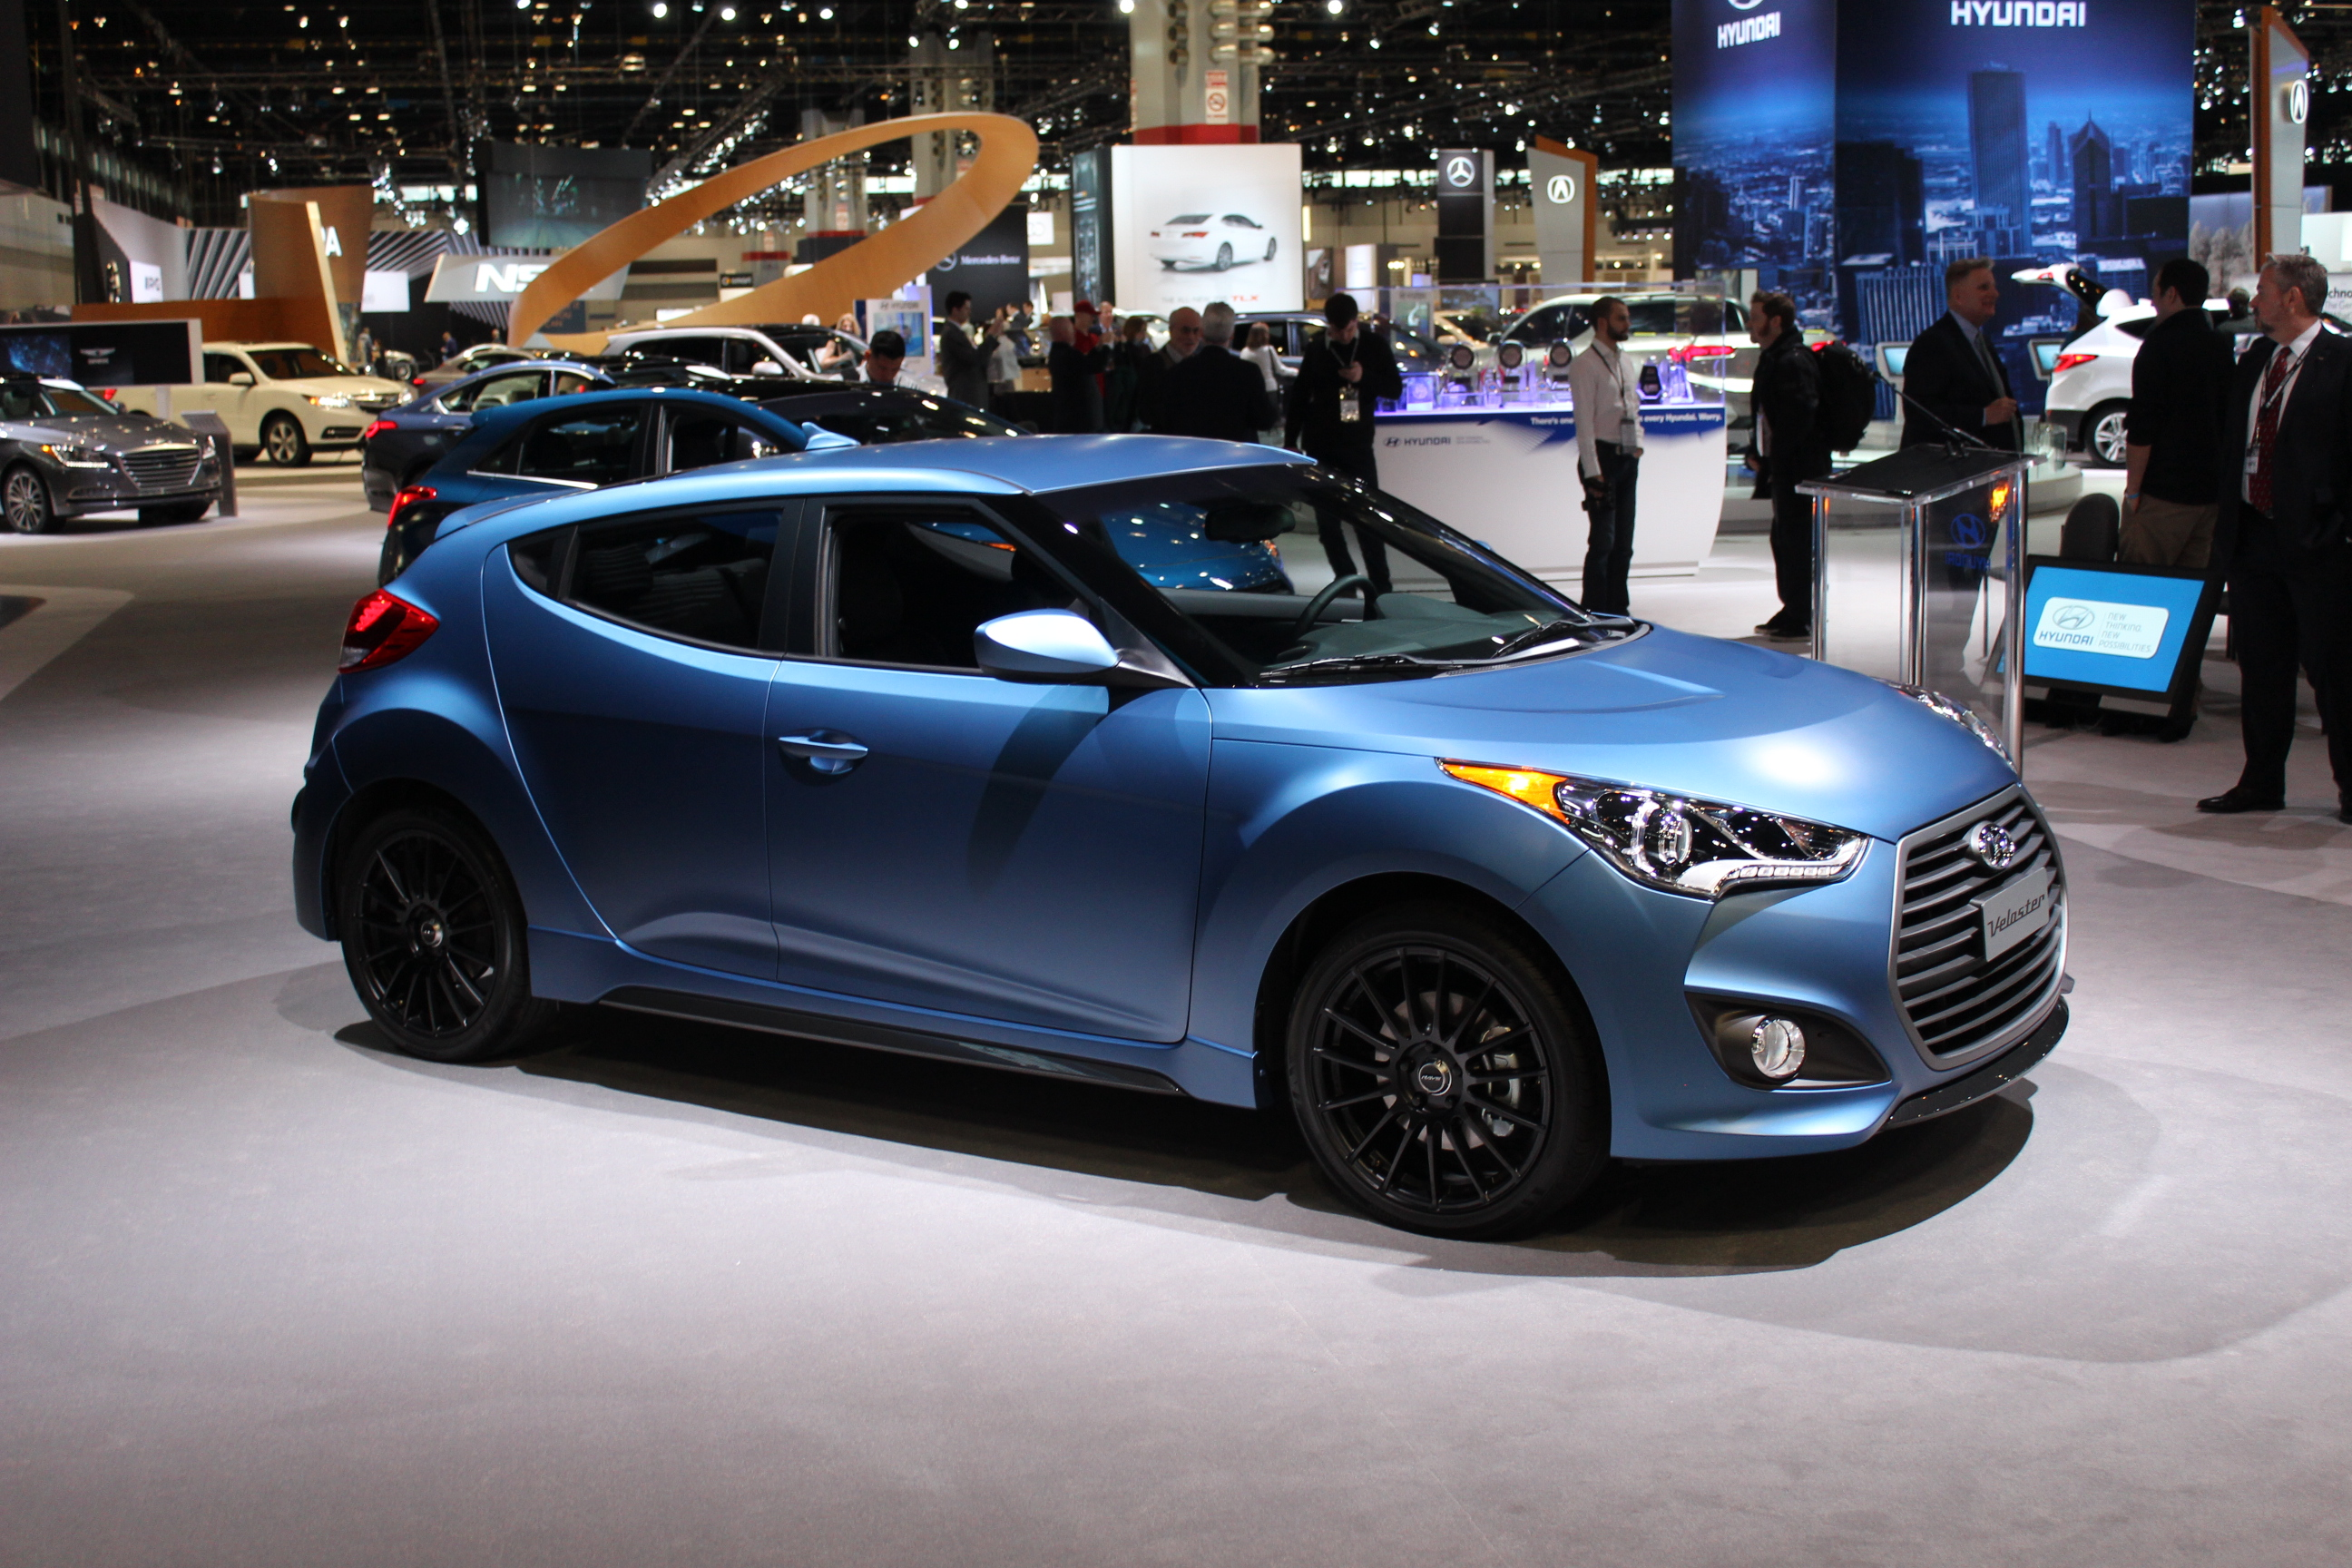 2016 hyundai veloster rally edition live at the 2015 chicago auto show. Black Bedroom Furniture Sets. Home Design Ideas